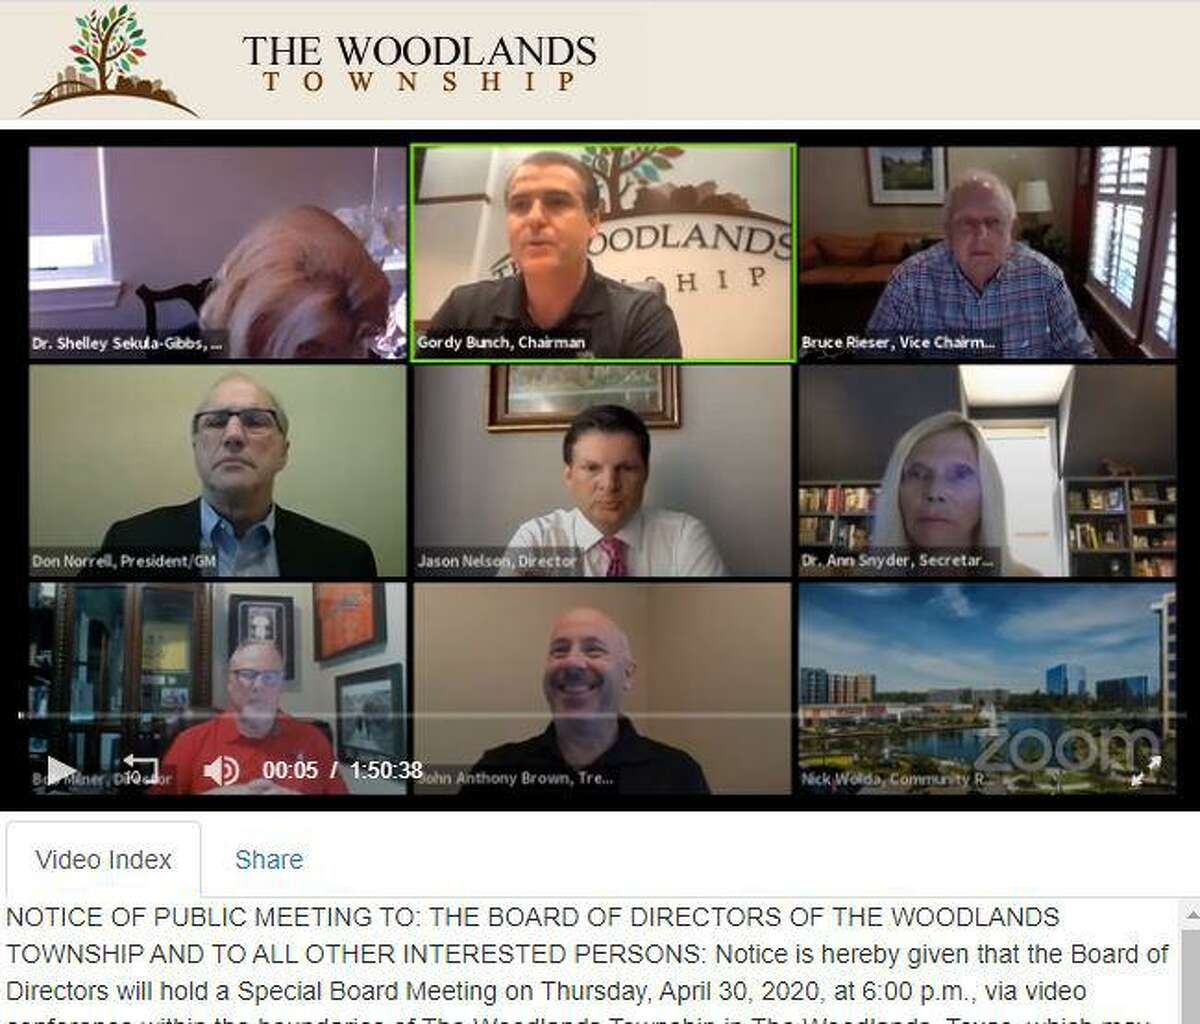 The Woodlands Township Board of Directors will tackled many issues during the Wednesday, June 17, meeting including issuing a proclamation supporting inclusion and diversity - the third such statement issues in the past four years - as well as a discussion of use of force policies employed by the Montomery County Sheriff's Office, which patrols the township on a contracted model of service. The meeting, scheduled for 6 p.m., is set to be hosted online again in a Zoom video conference format.